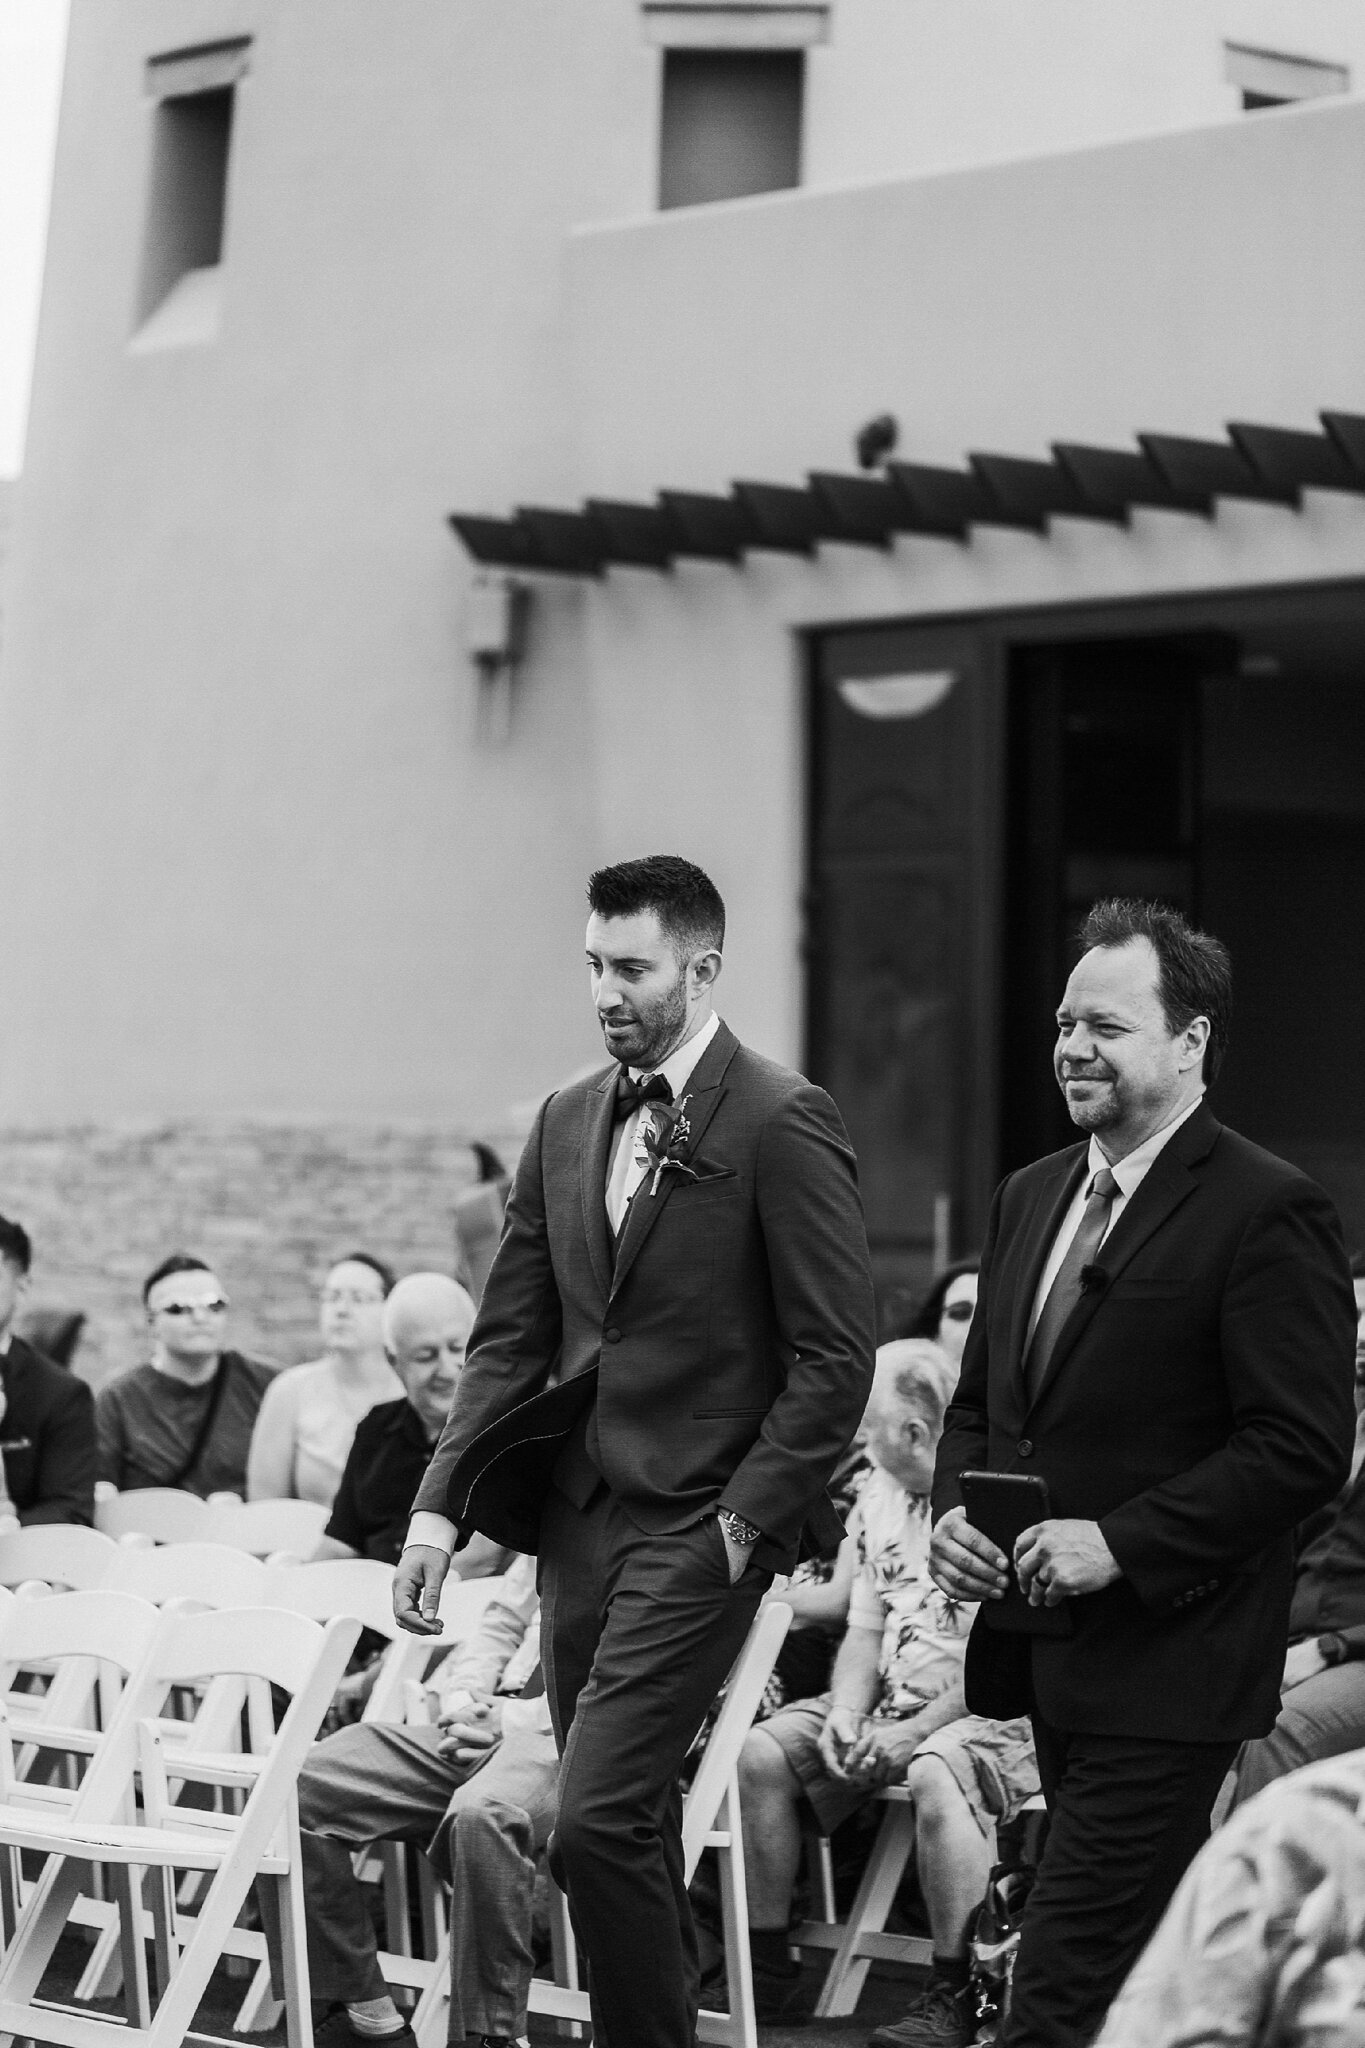 Alicia+lucia+photography+-+albuquerque+wedding+photographer+-+santa+fe+wedding+photography+-+new+mexico+wedding+photographer+-+new+mexico+wedding+-+albuquerque+wedding+-+sandia+wedding+-+sandia+event+center+wedding_0038.jpg